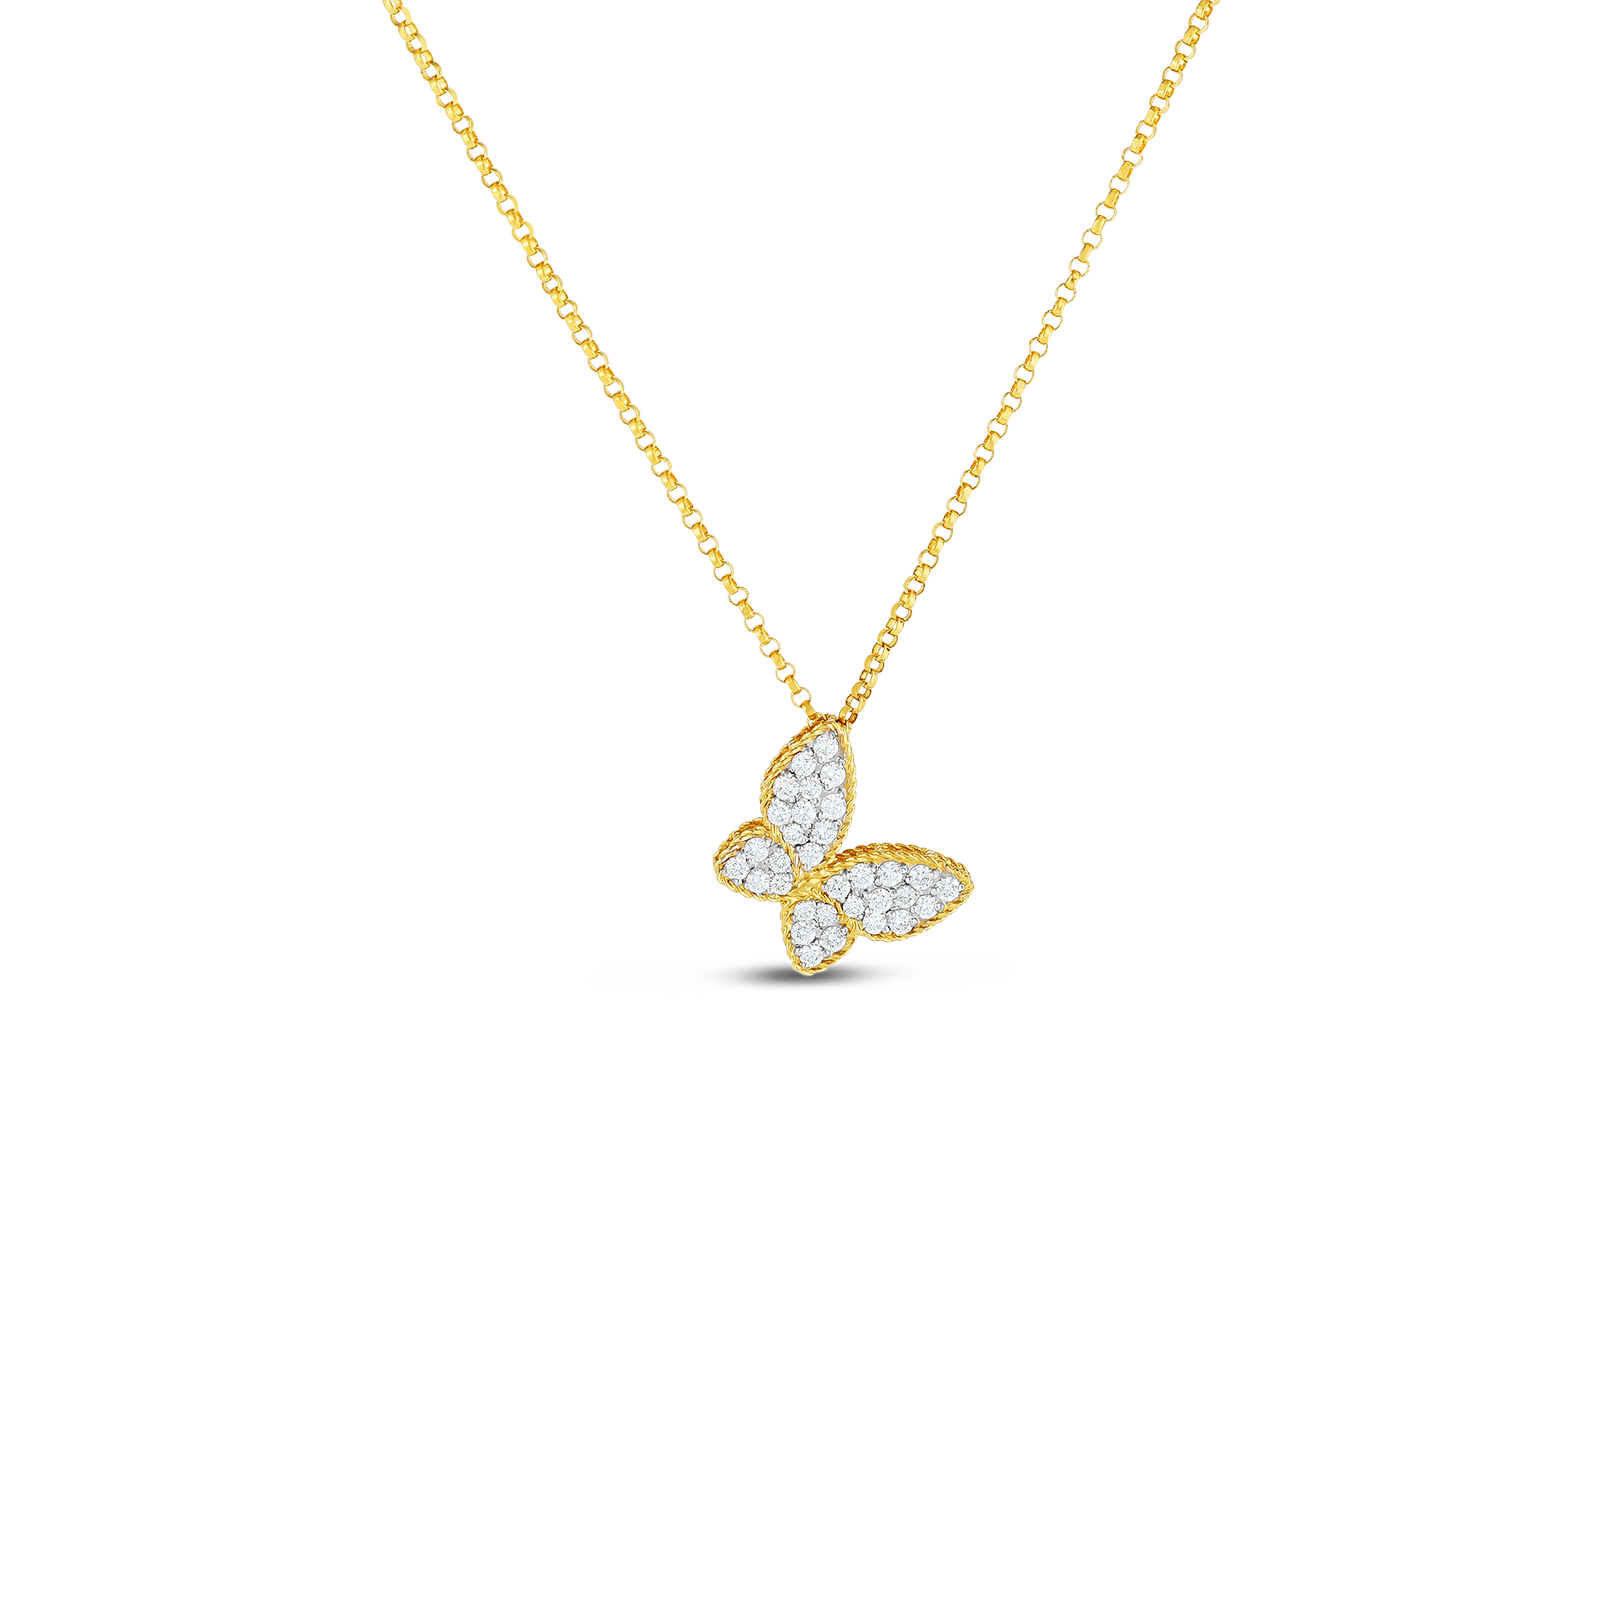 18kt gold butterfly pendant with diamonds